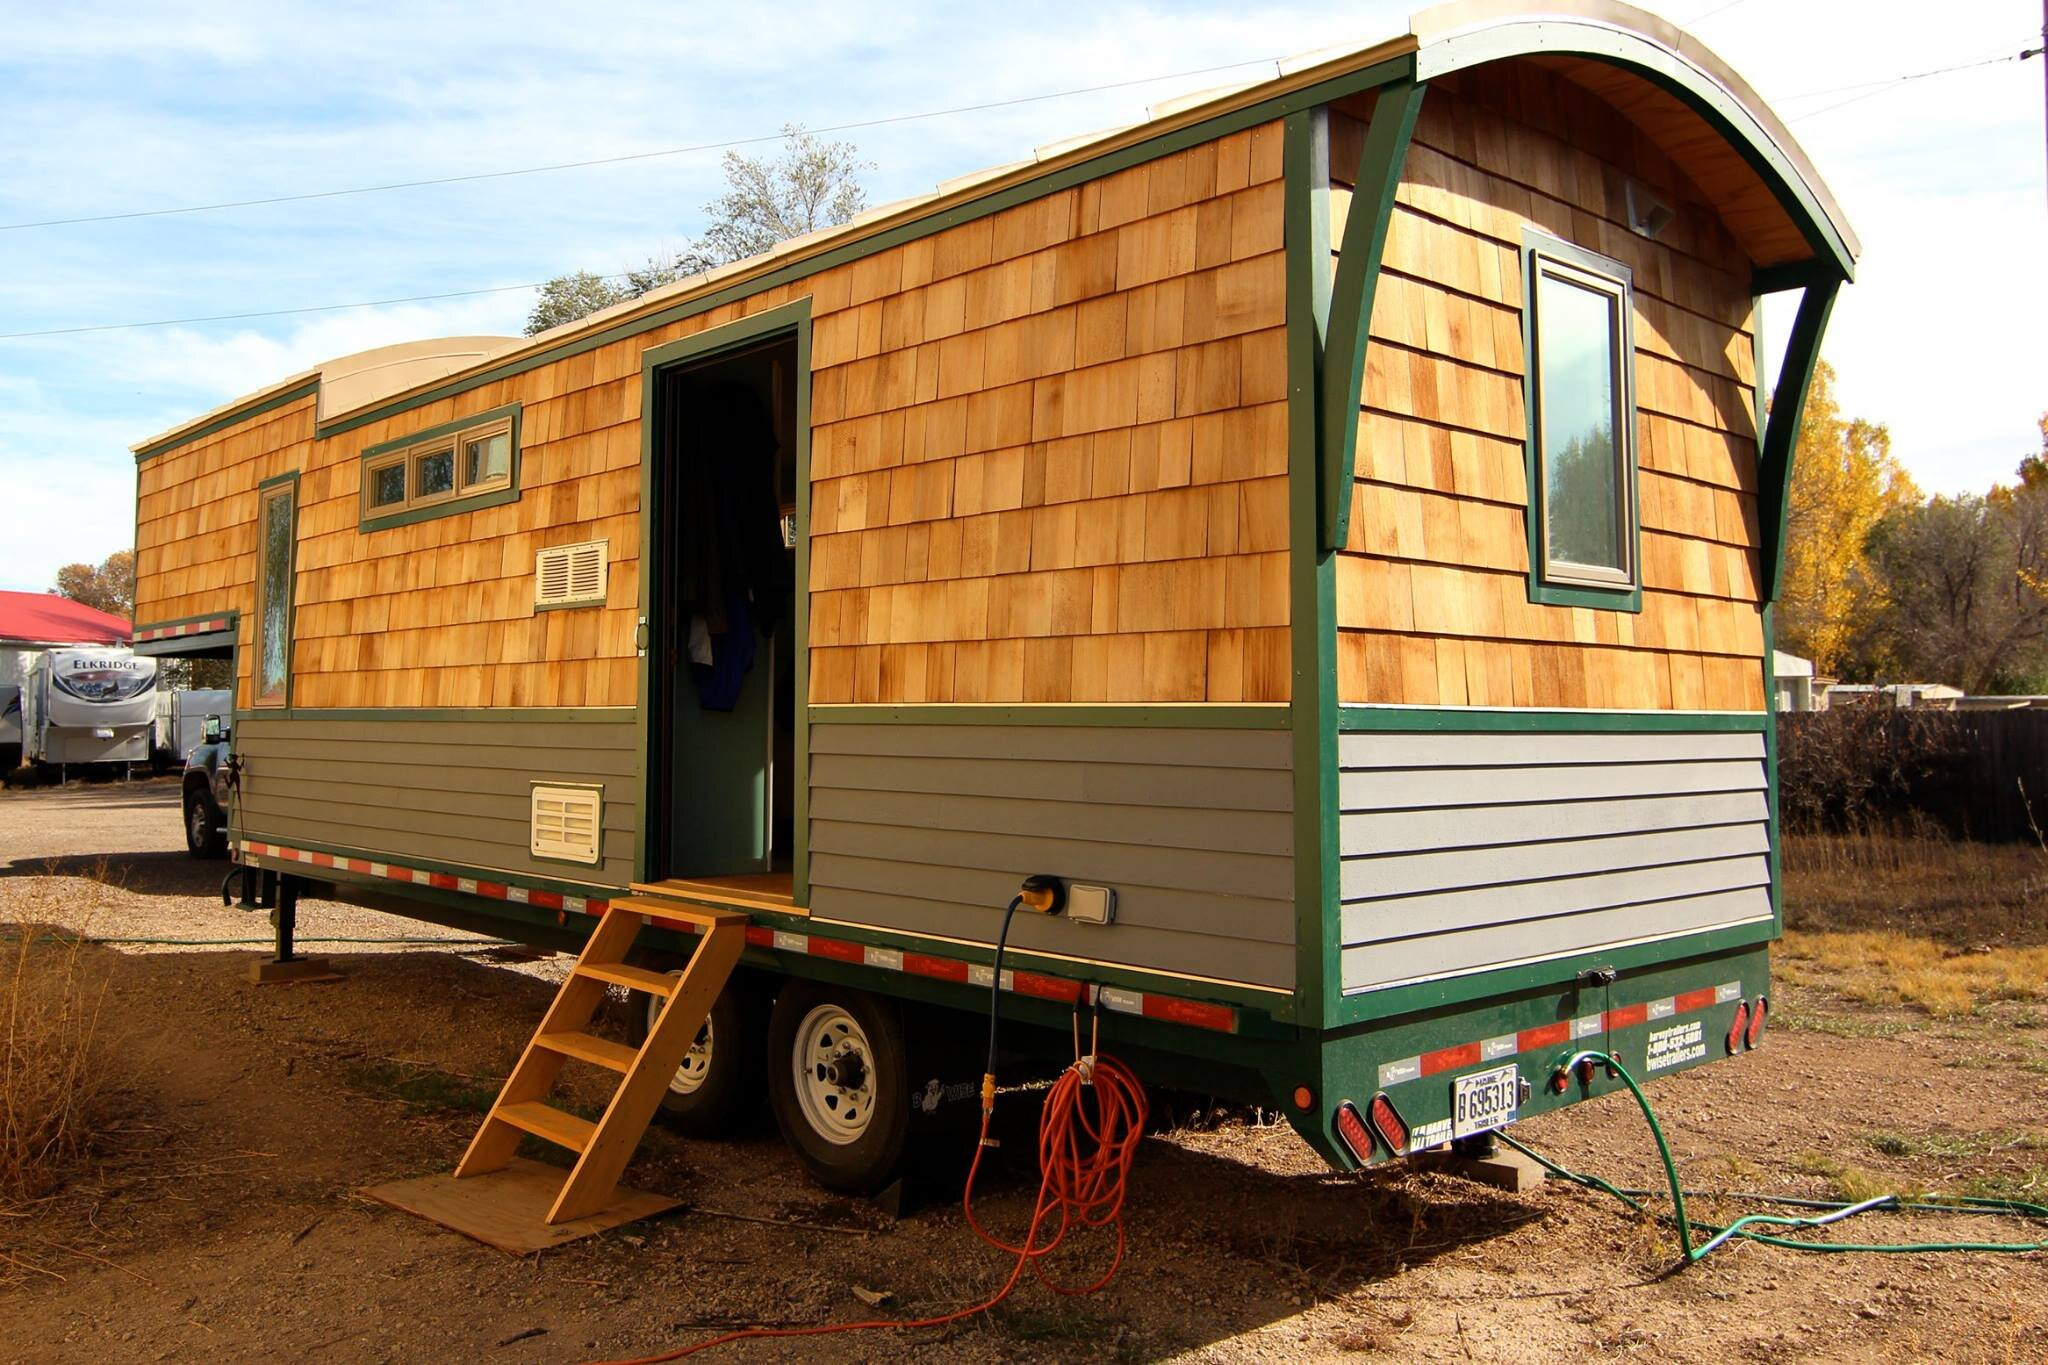 32 Foot Tiny House Built on a Gooseneck Trailer by MitchCraft